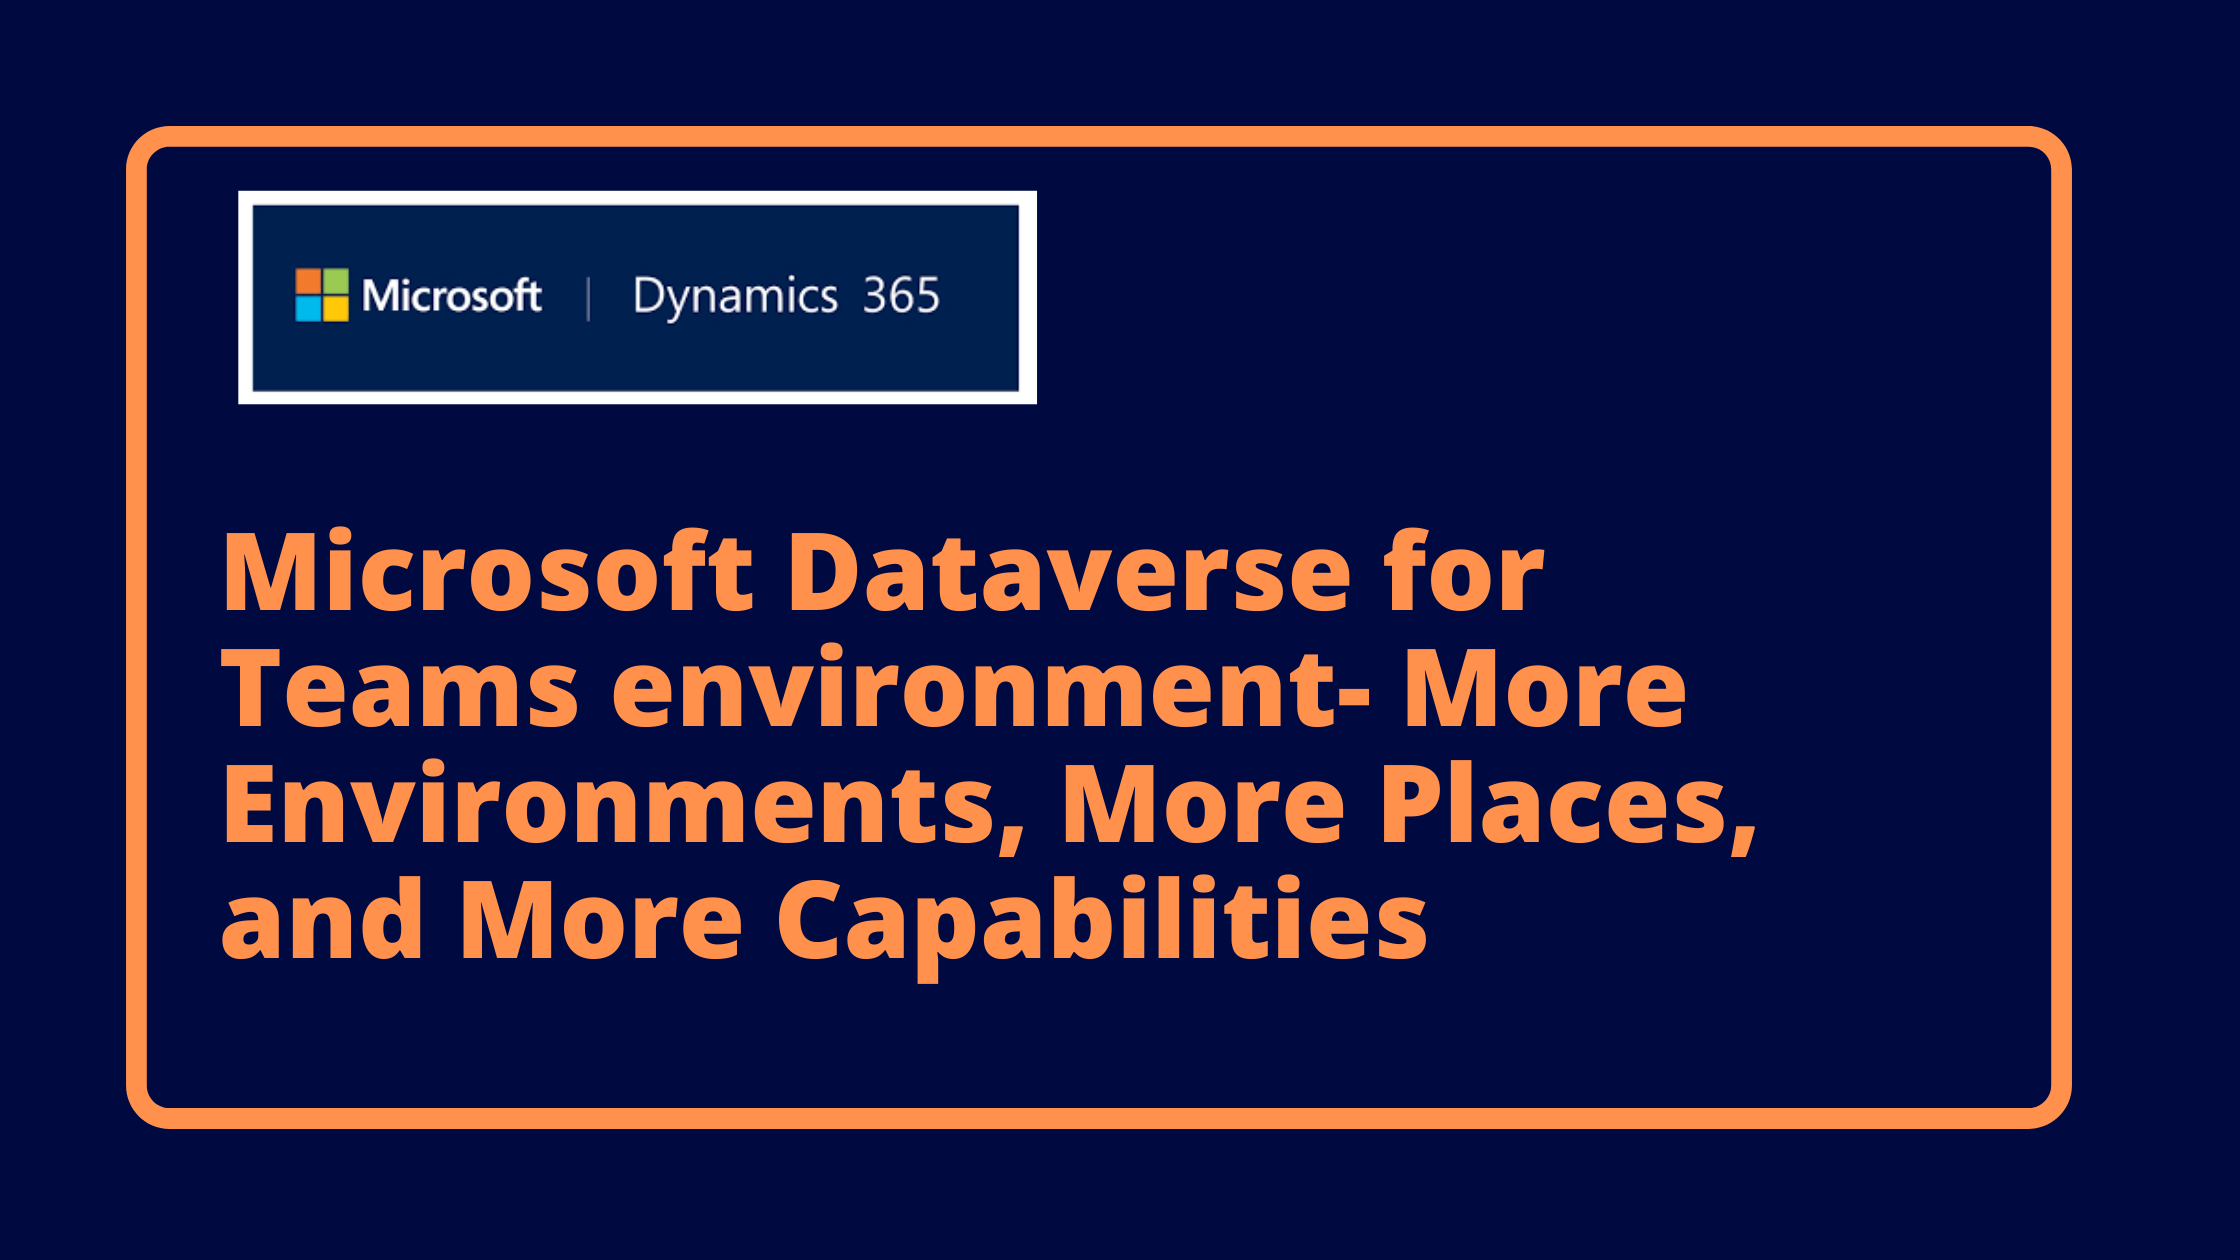 Microsoft Dataverse for Teams environment- More Environments, More Places, and More Capabilities